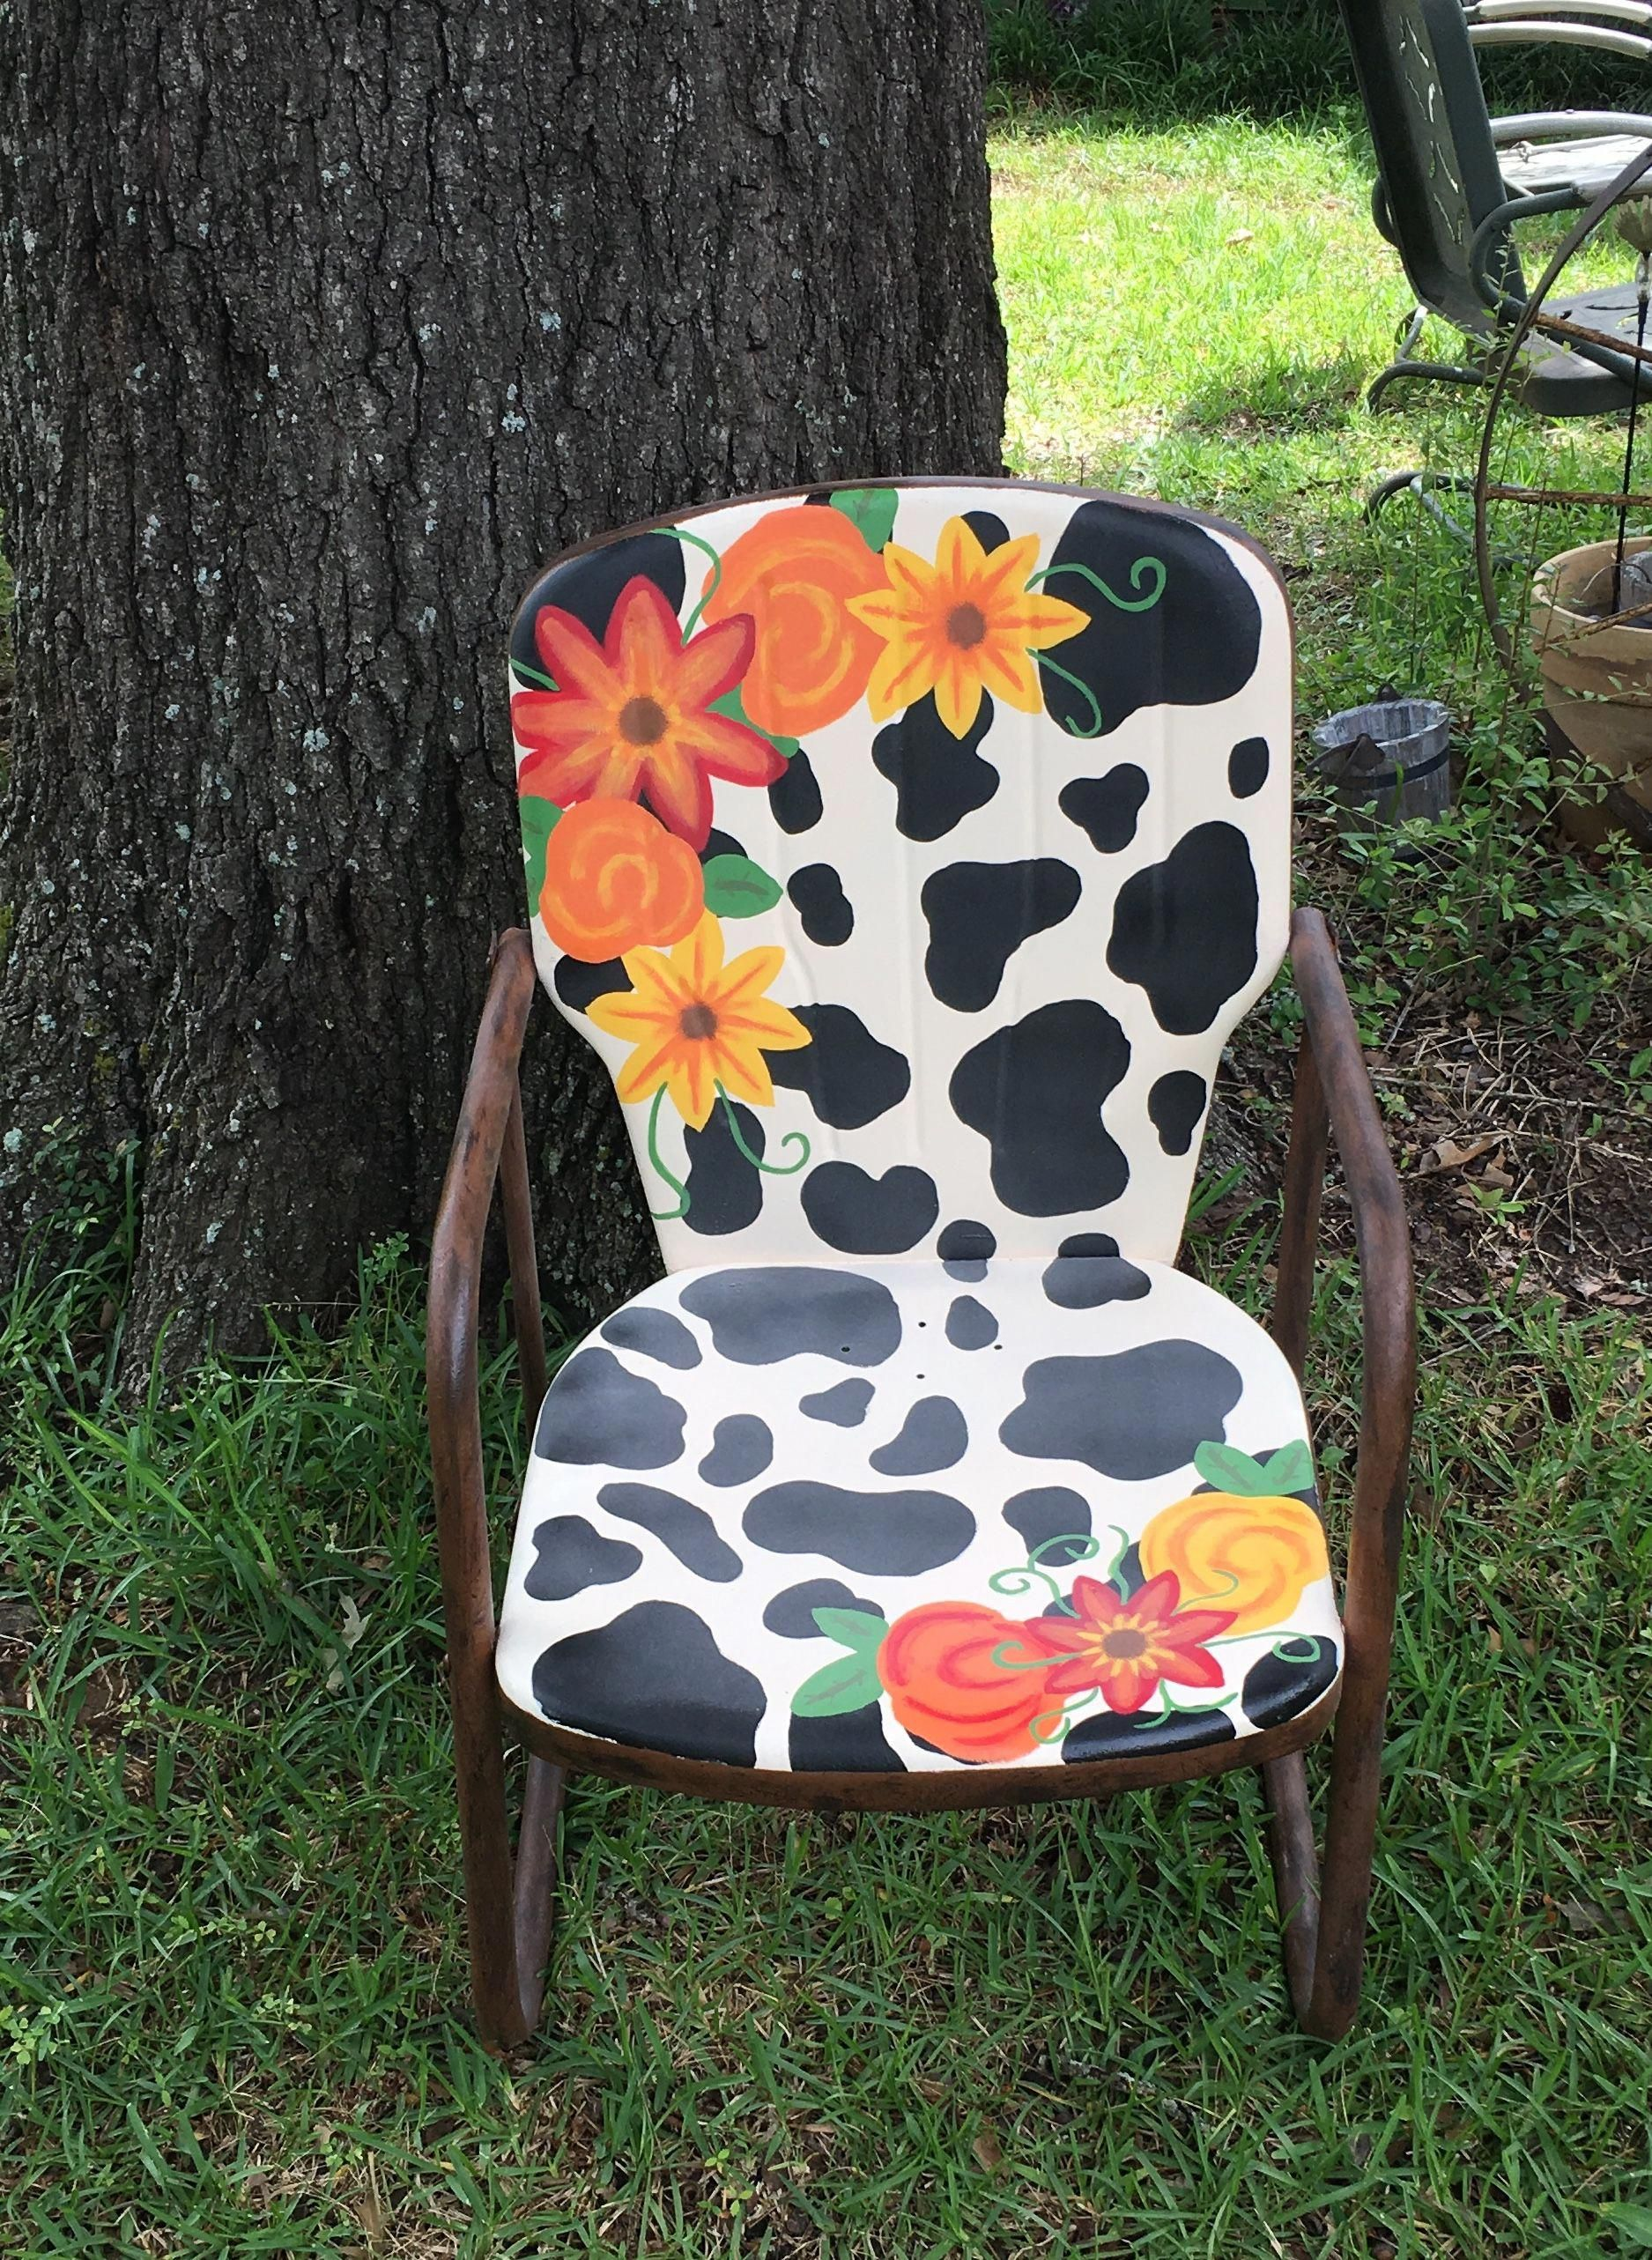 Funky Furniture for outdoors Chalkpaintfurniturediy is part of Painted furniture -